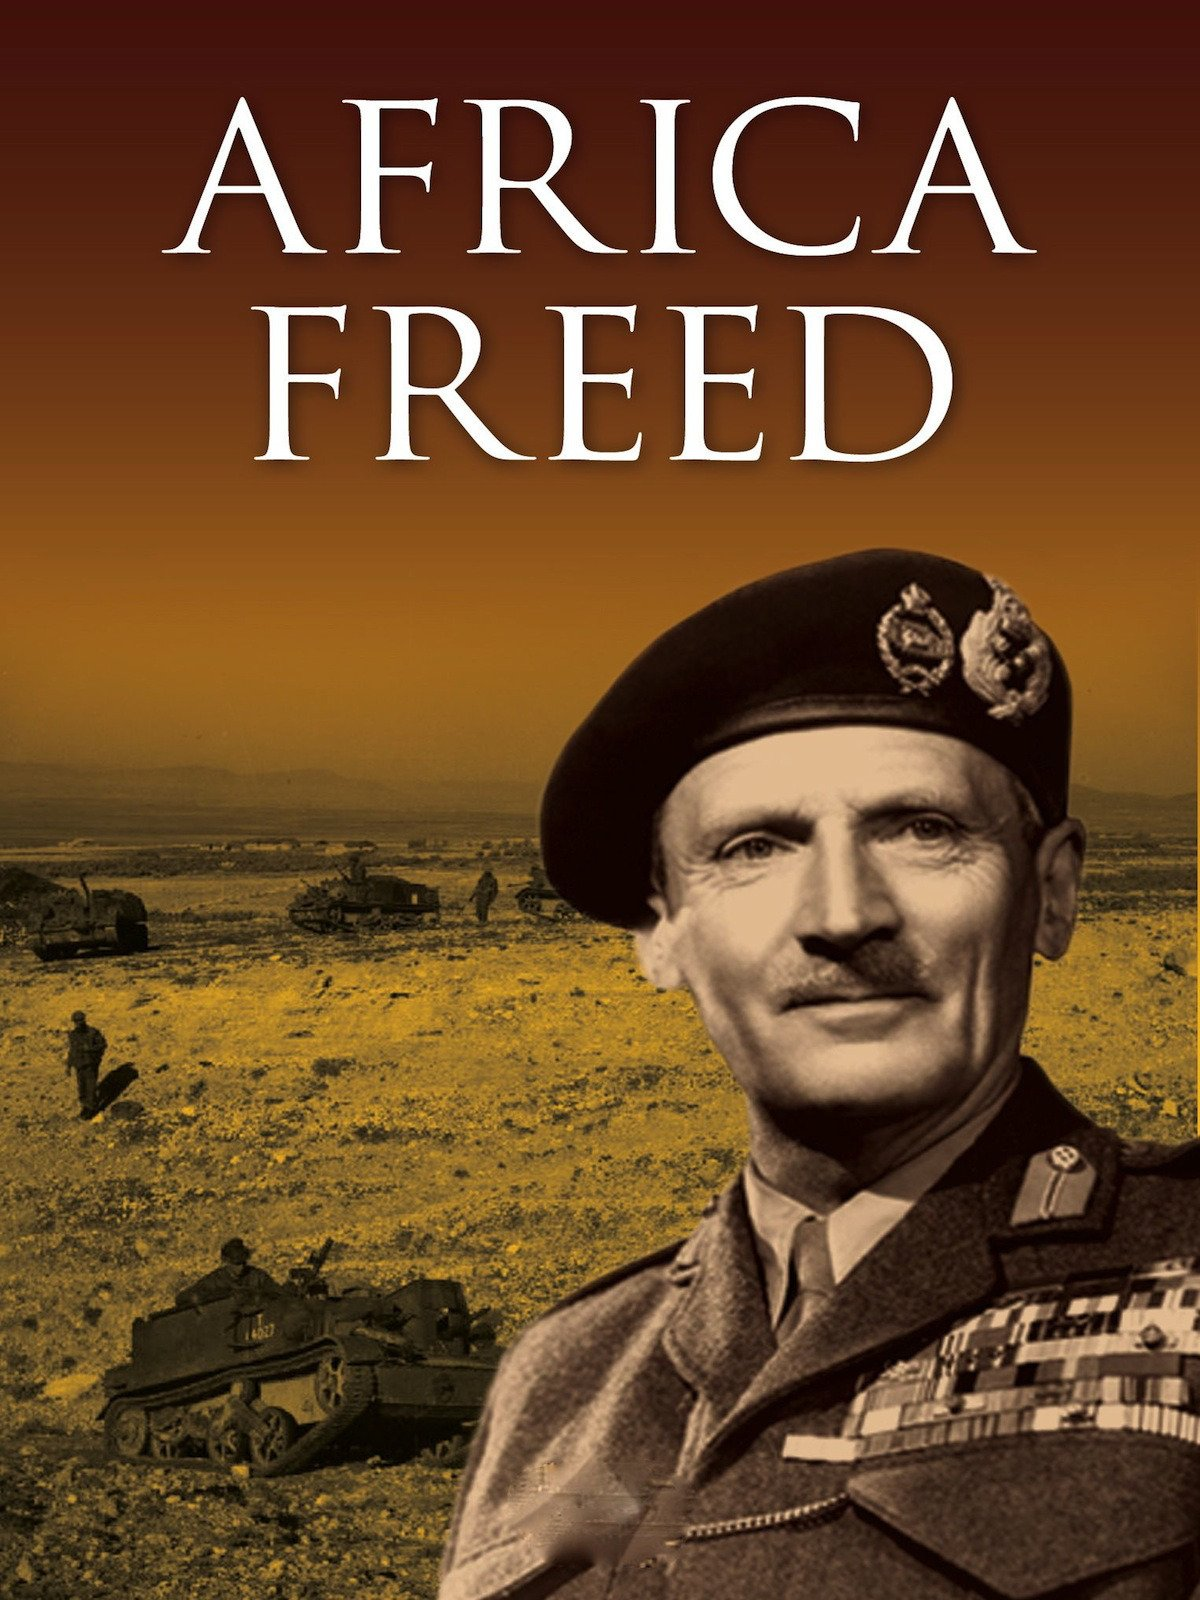 Africa Freed